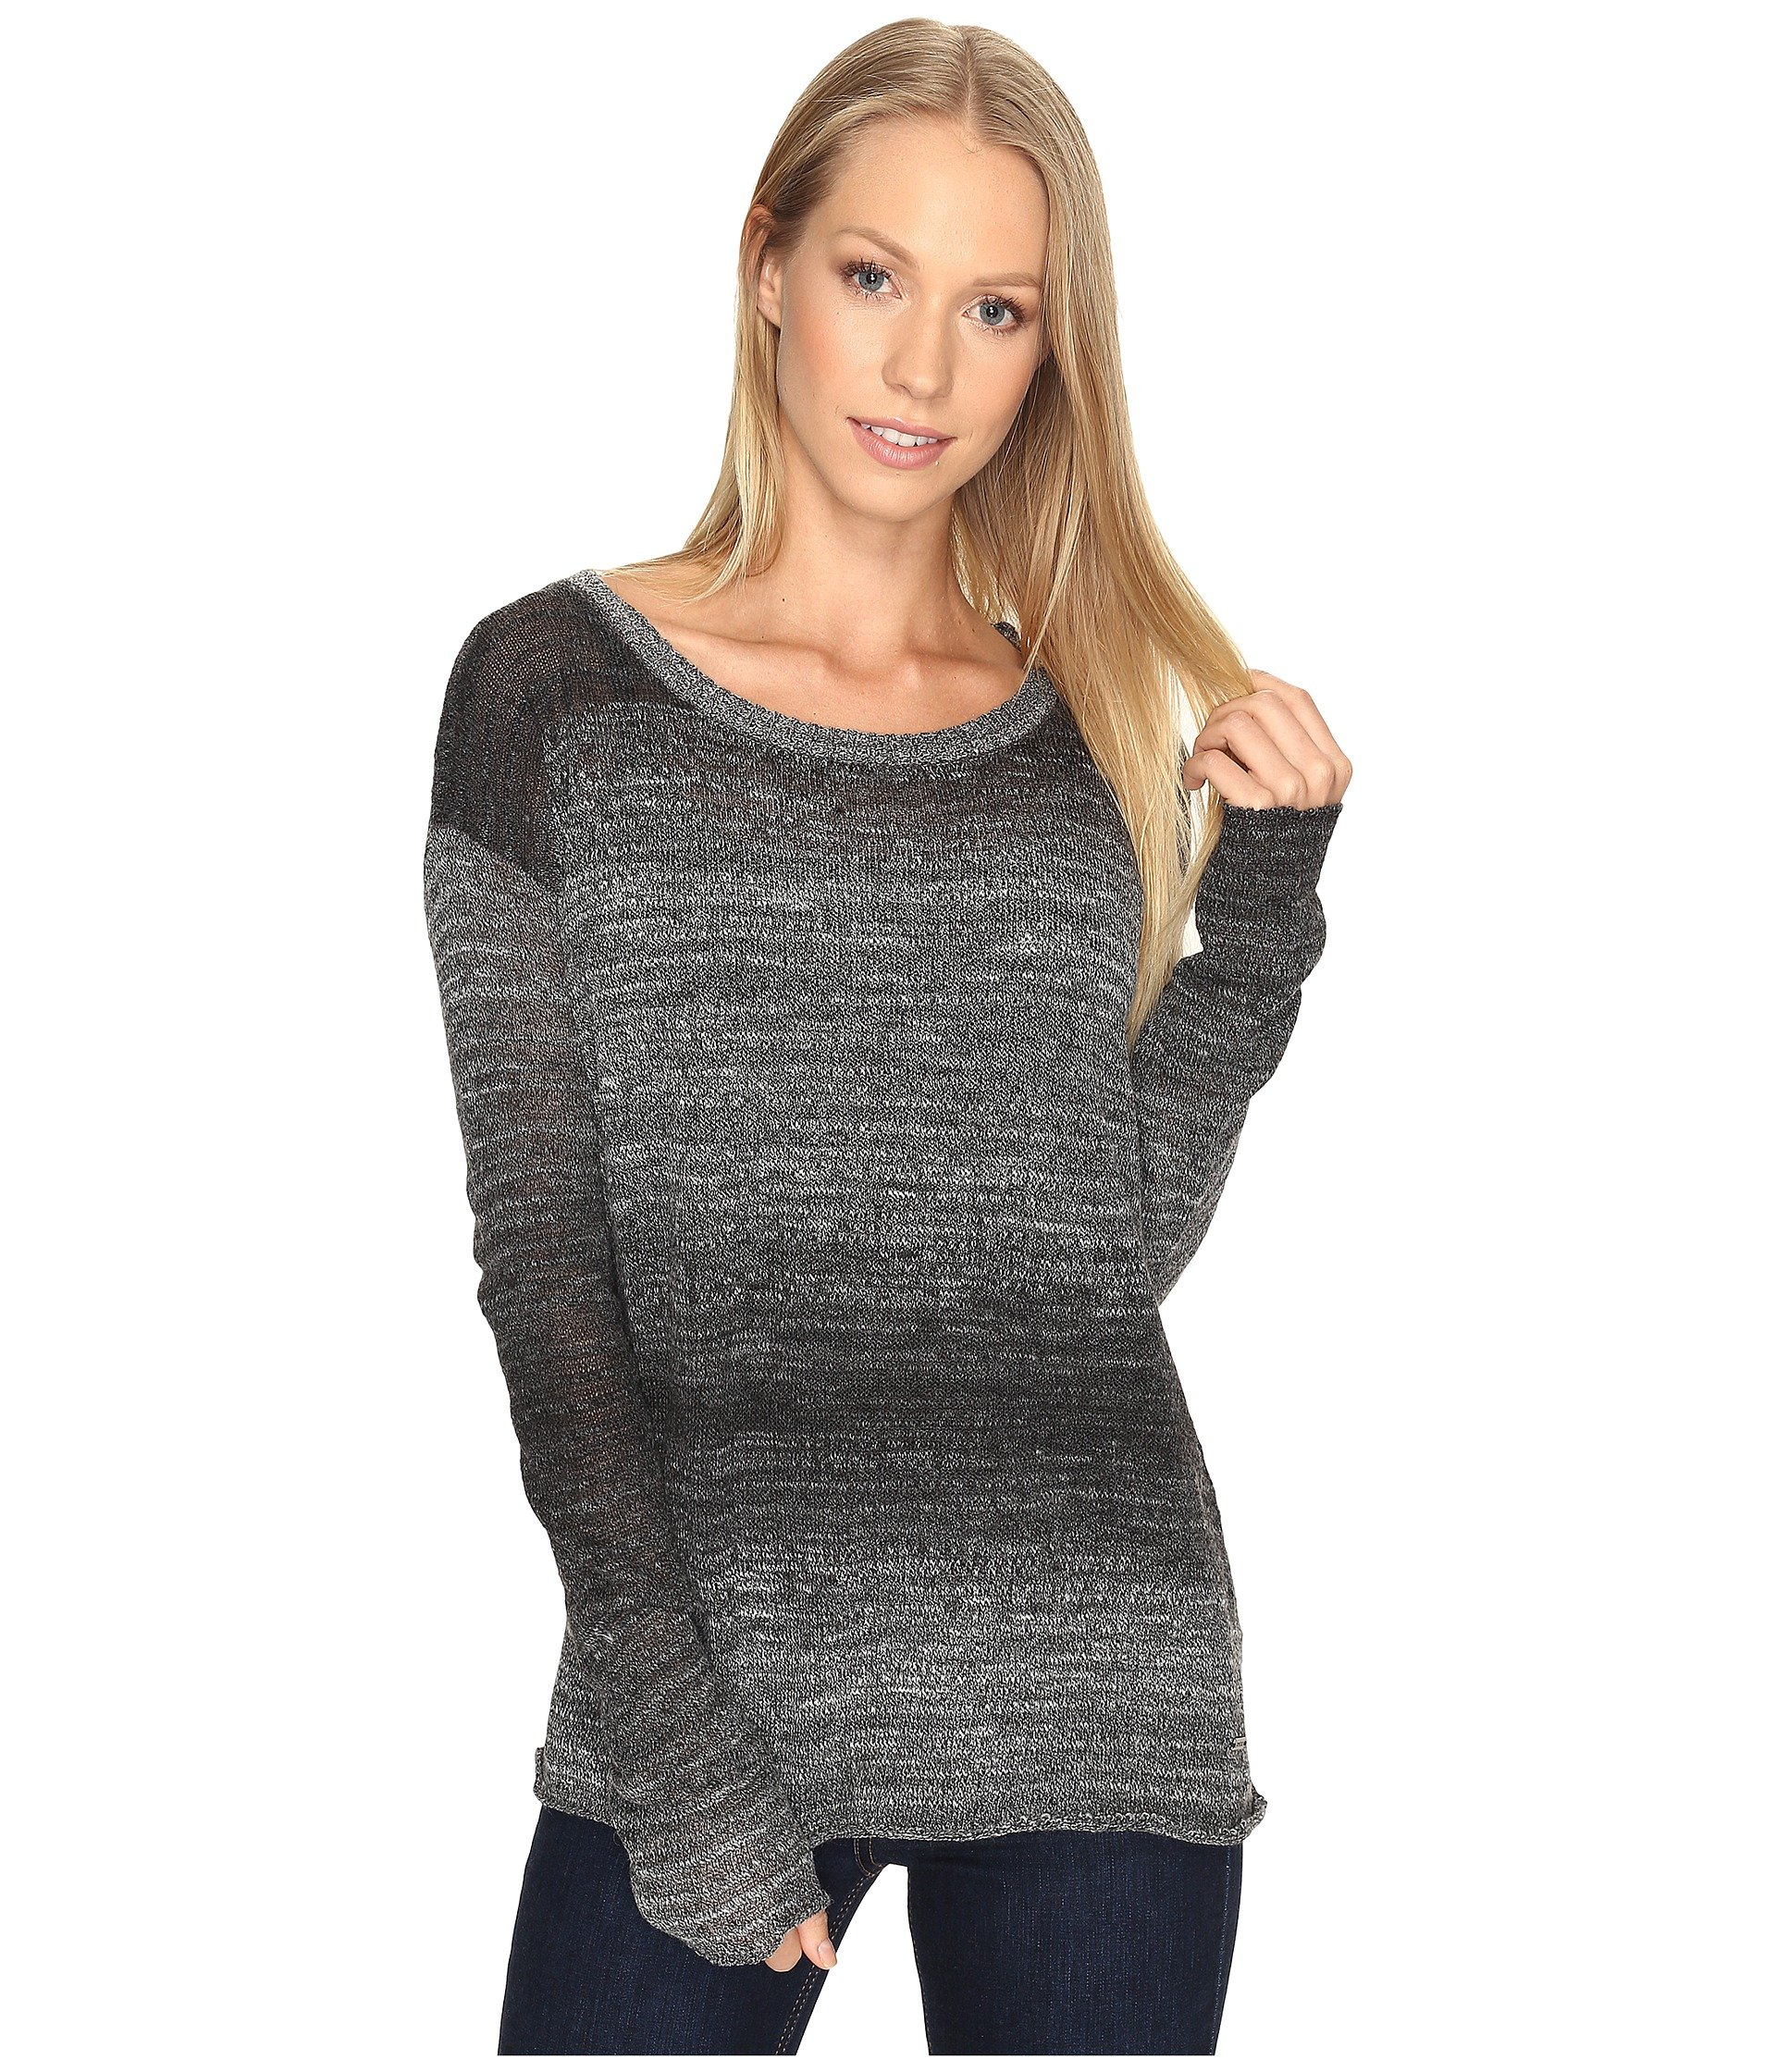 Nightingale Sweater, Black/White